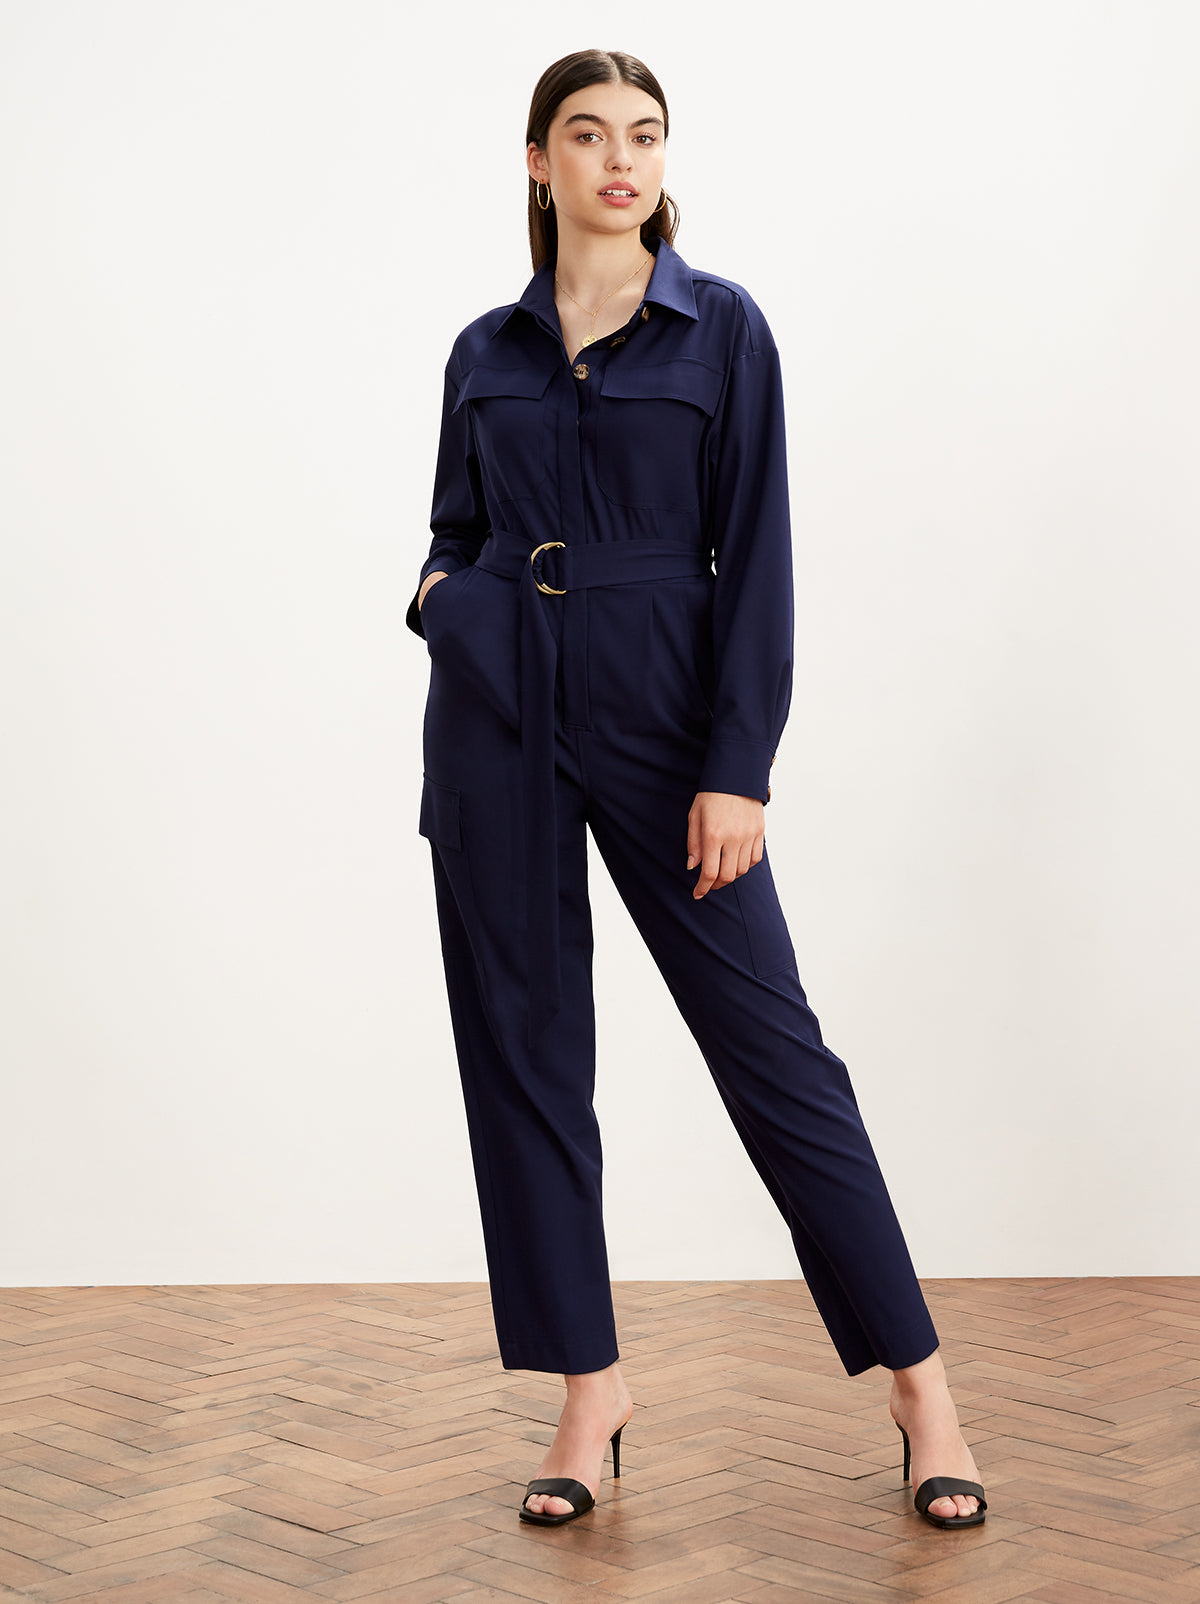 Jule Navy Oversized Boiler Suit by KITRI Studio